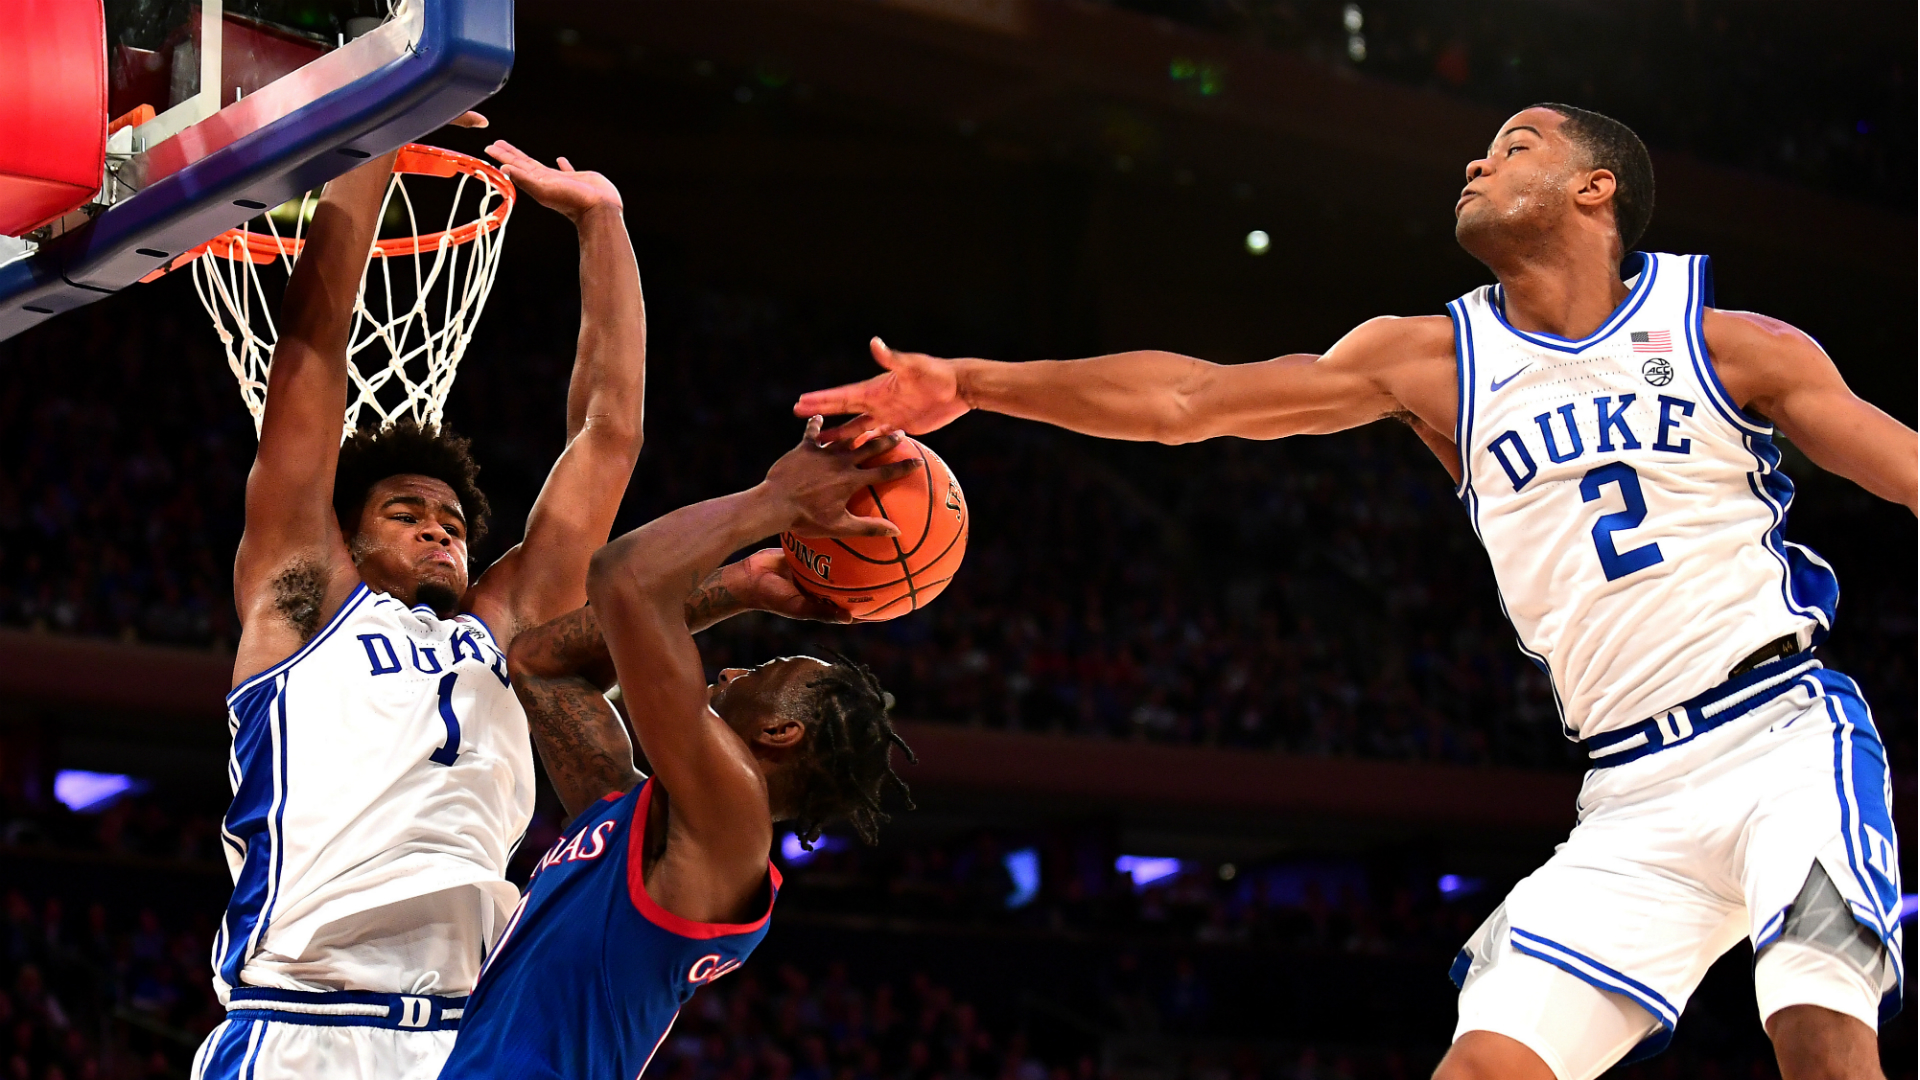 Post Game: Duke Inches Past Kansas 68-66; Jones w/ 15 points, 7 Assists; Stanley scores 13 in Debut